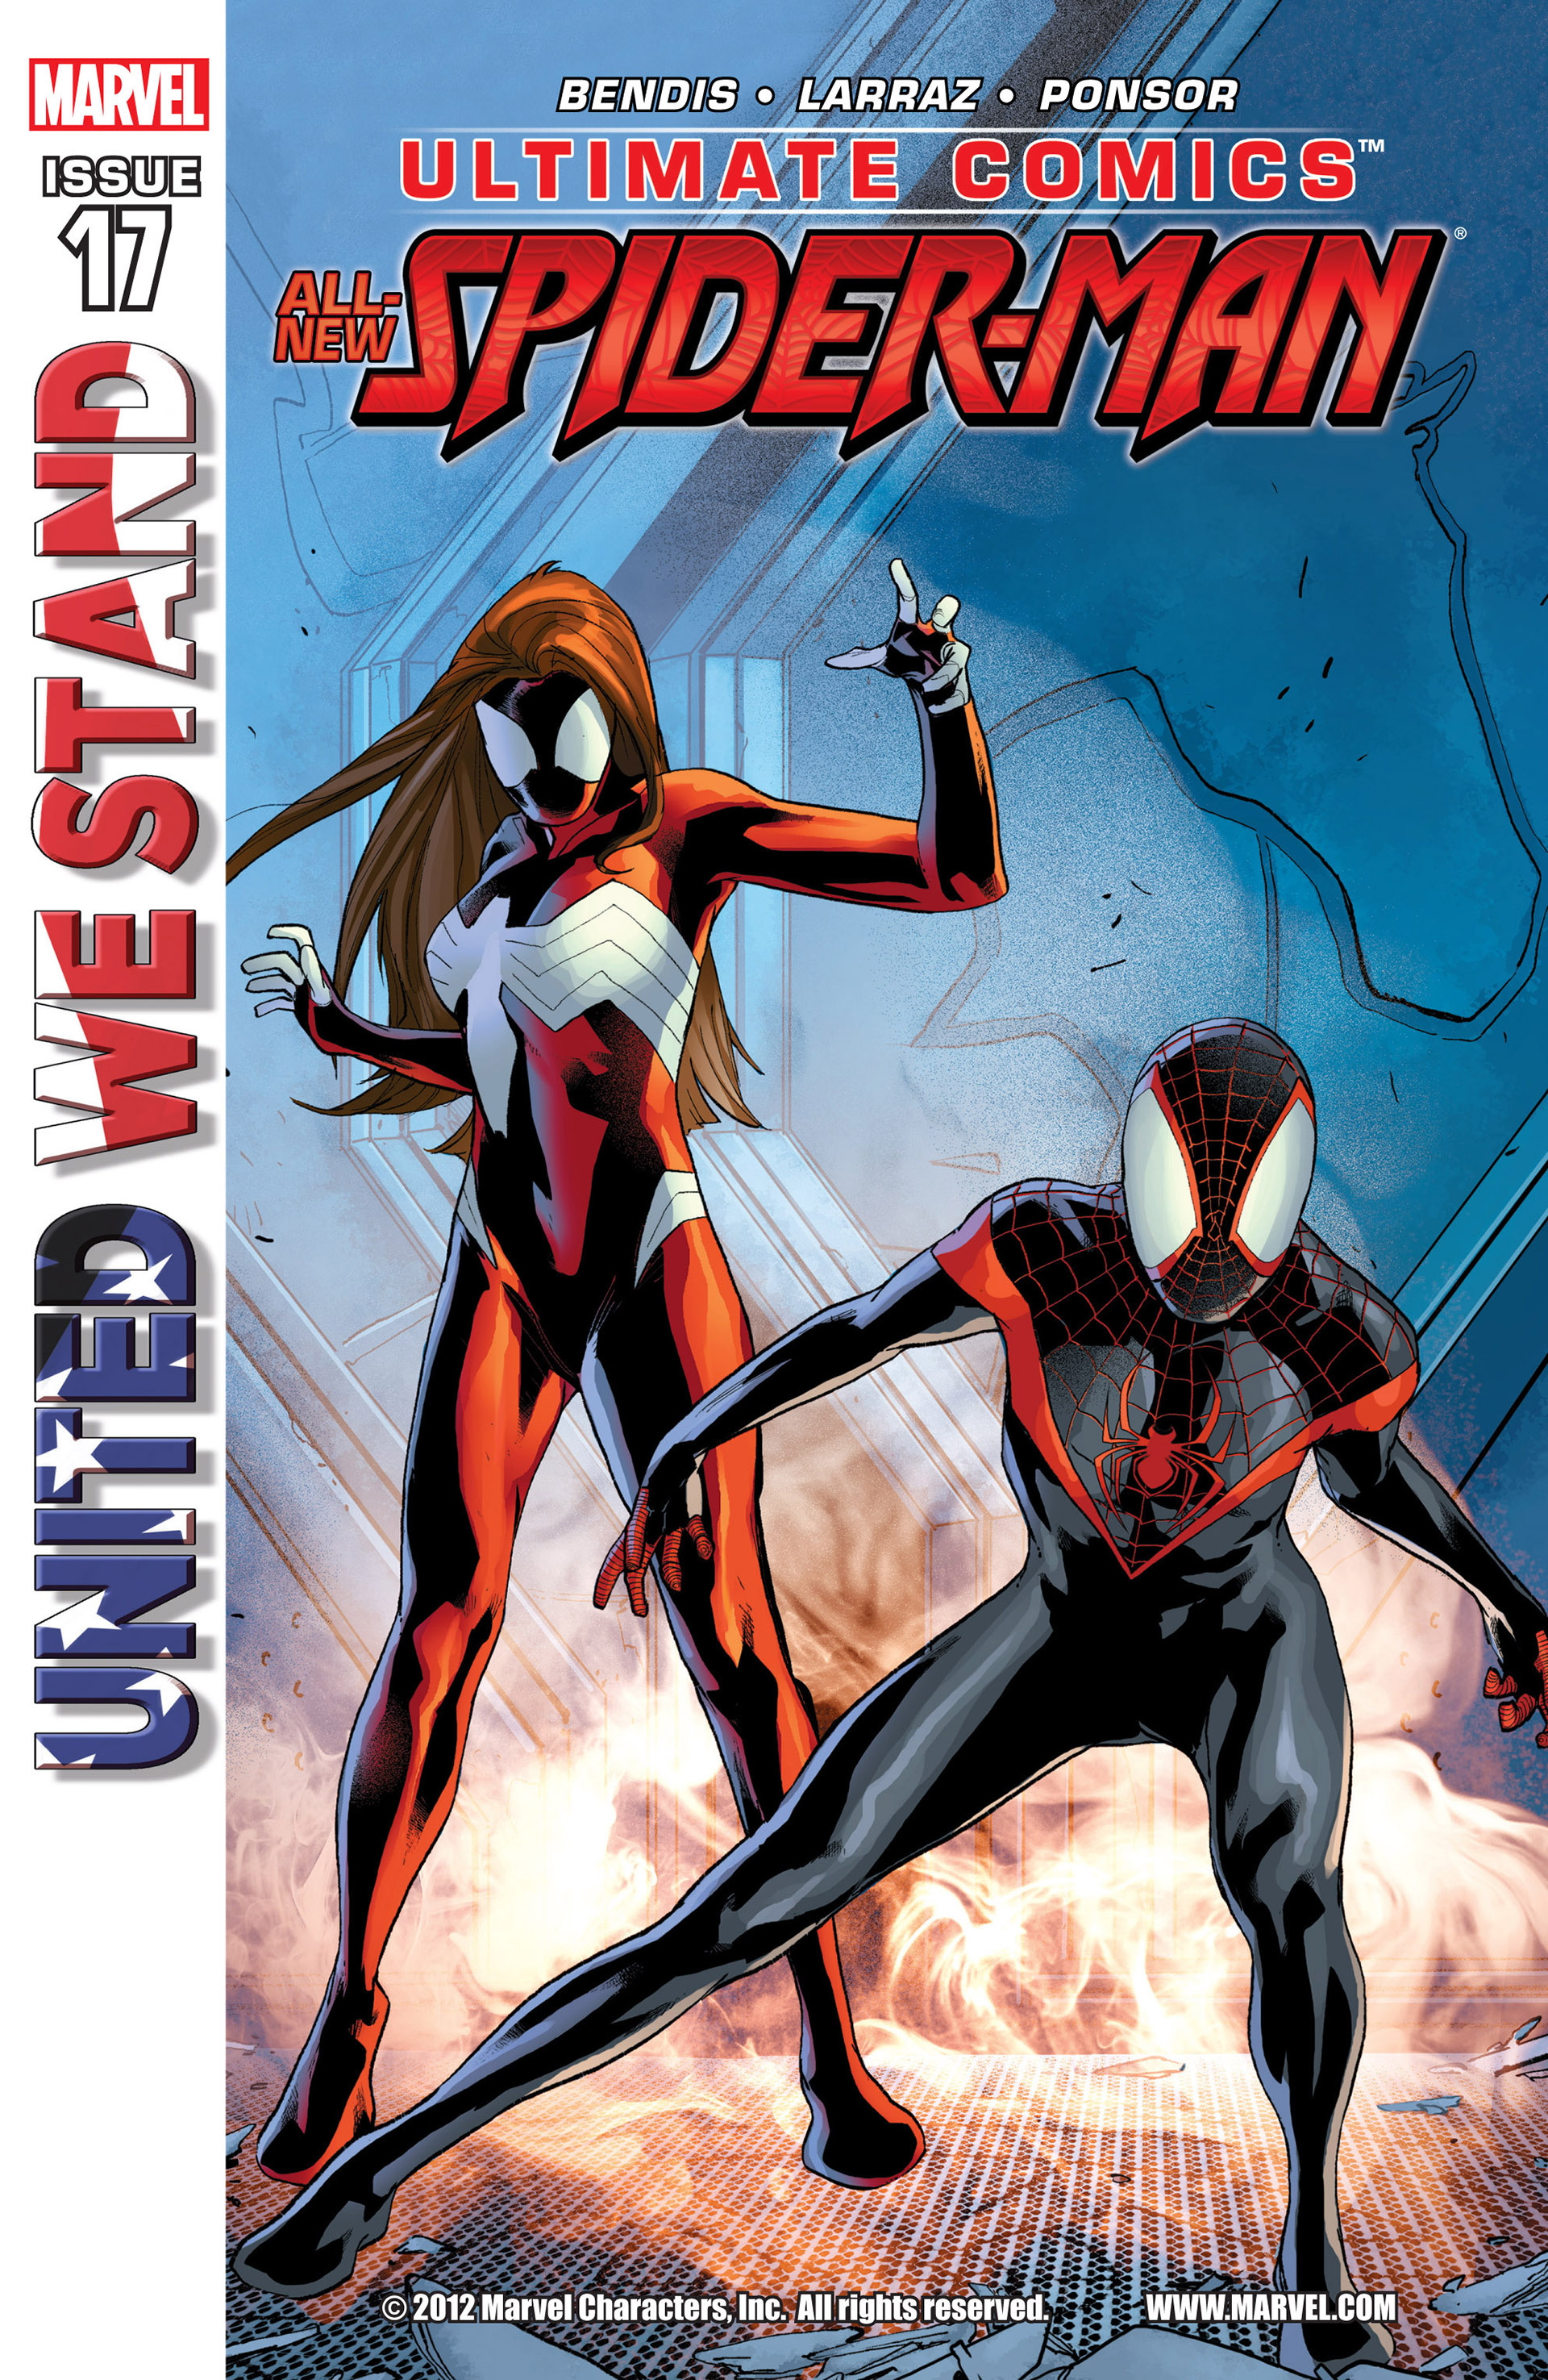 Read online Ultimate Comics Spider-Man (2011) comic -  Issue #17 - 1